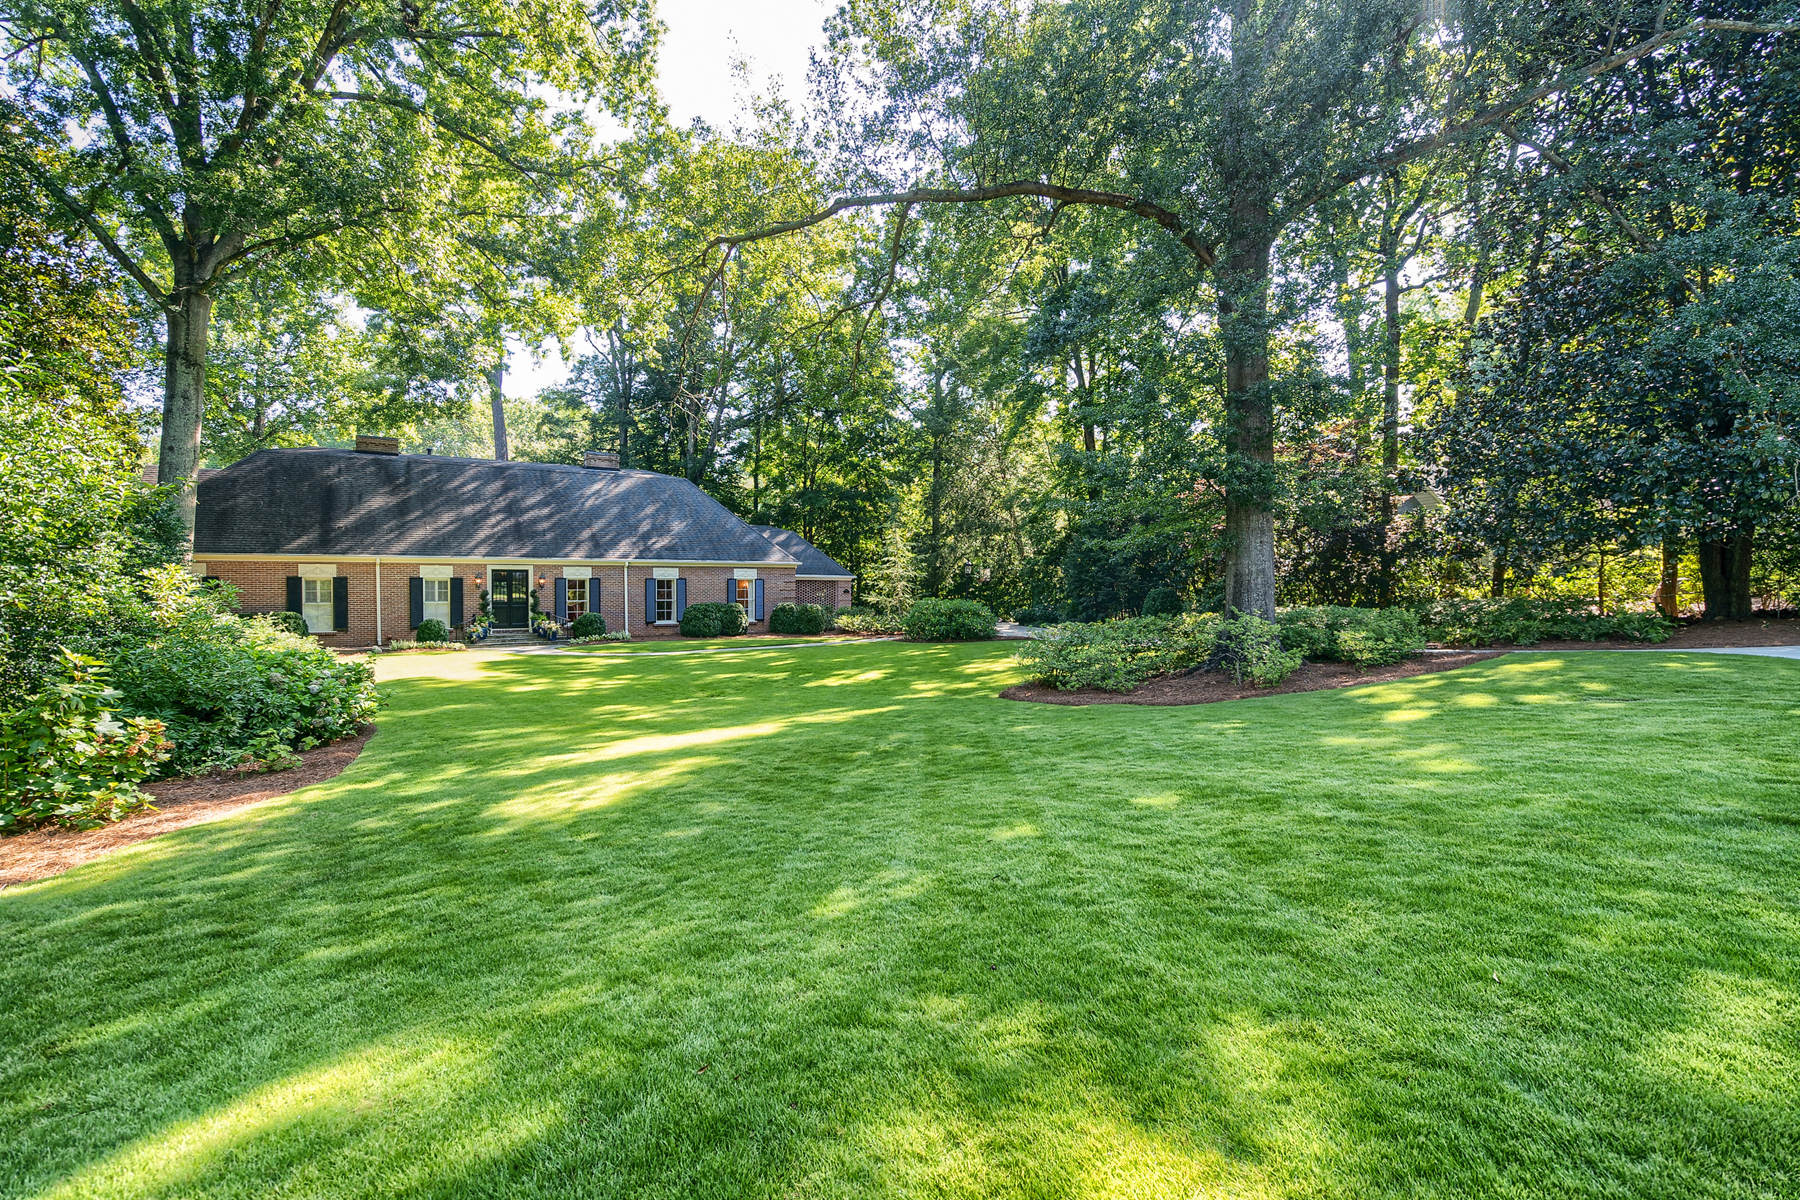 Single Family Home for Sale at Fantastic Kingswood Home 3741 Haddon Hall Road NW Atlanta, Georgia 30327 United States